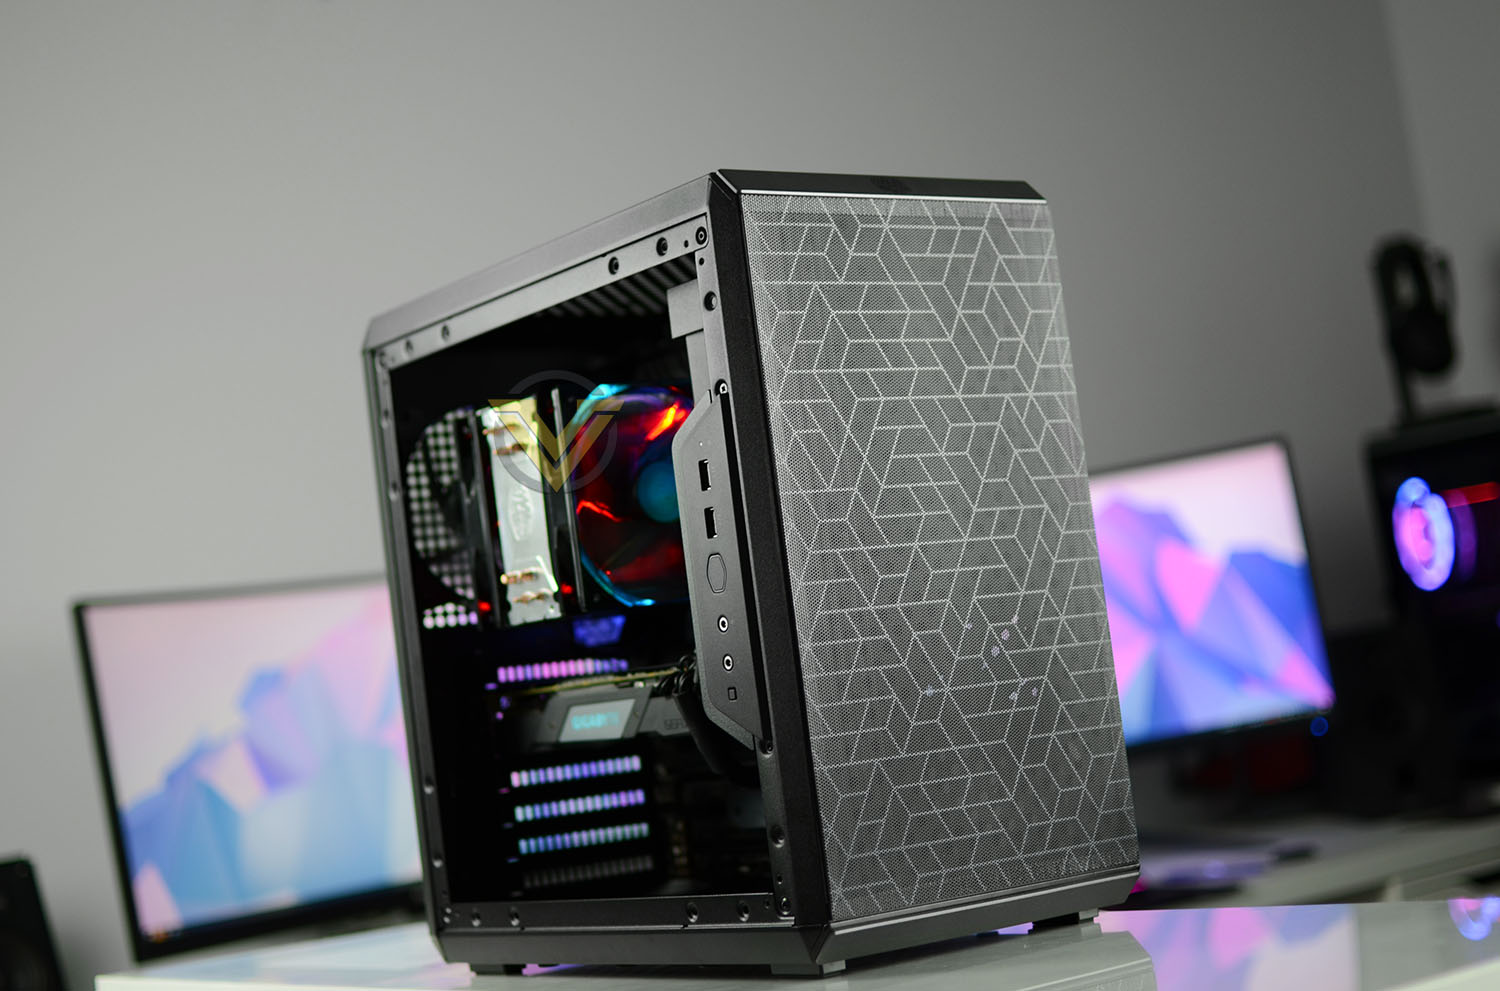 coolermaster_masterbox_q500l_review_intro.jpg